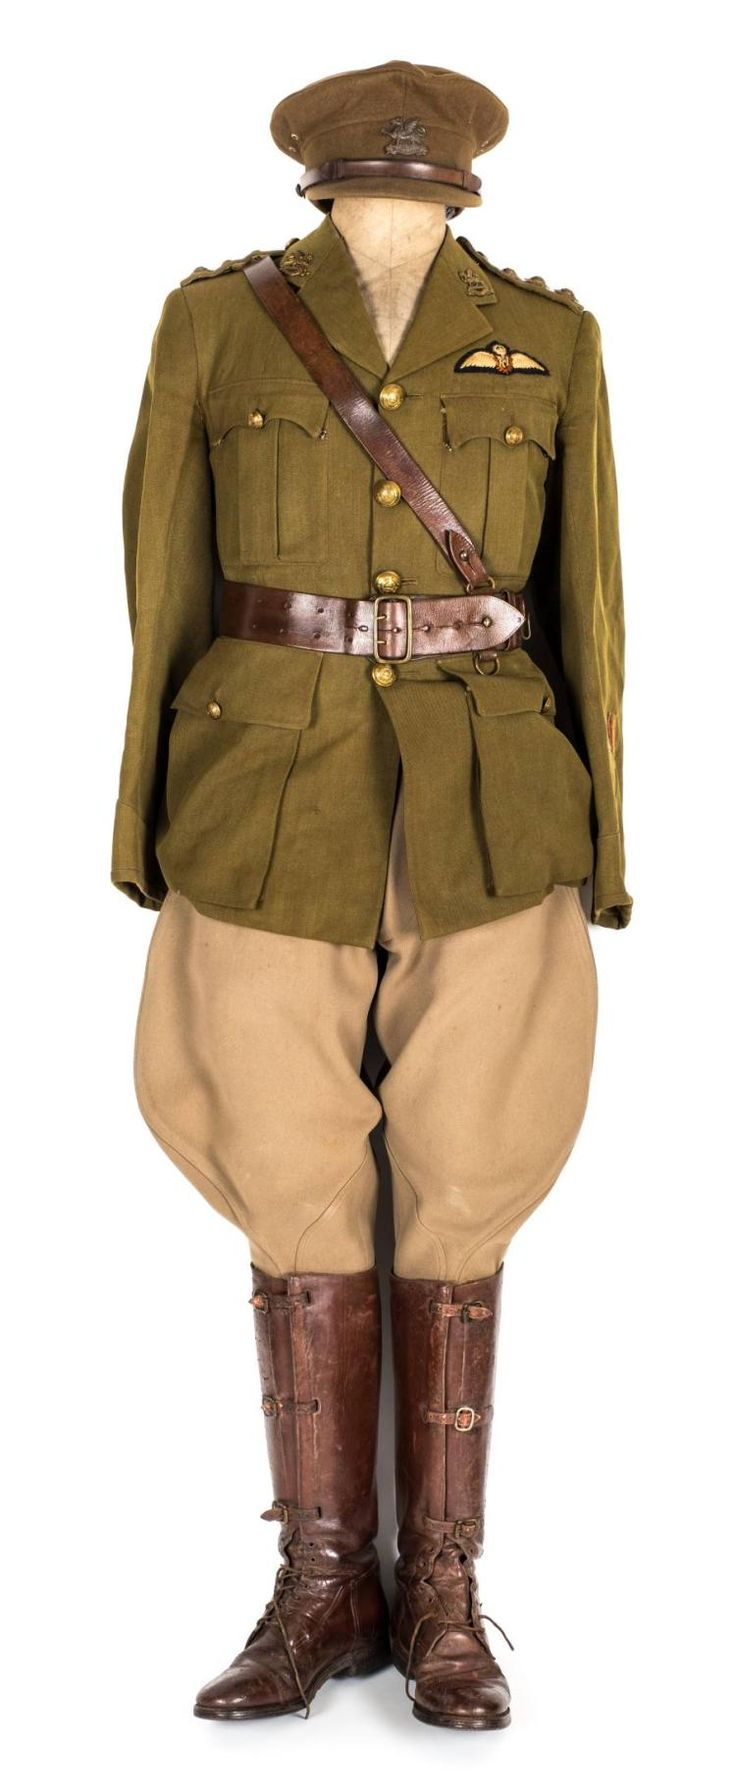 * Royal Air Force. WWI officer's uniform of the Royal East Kent